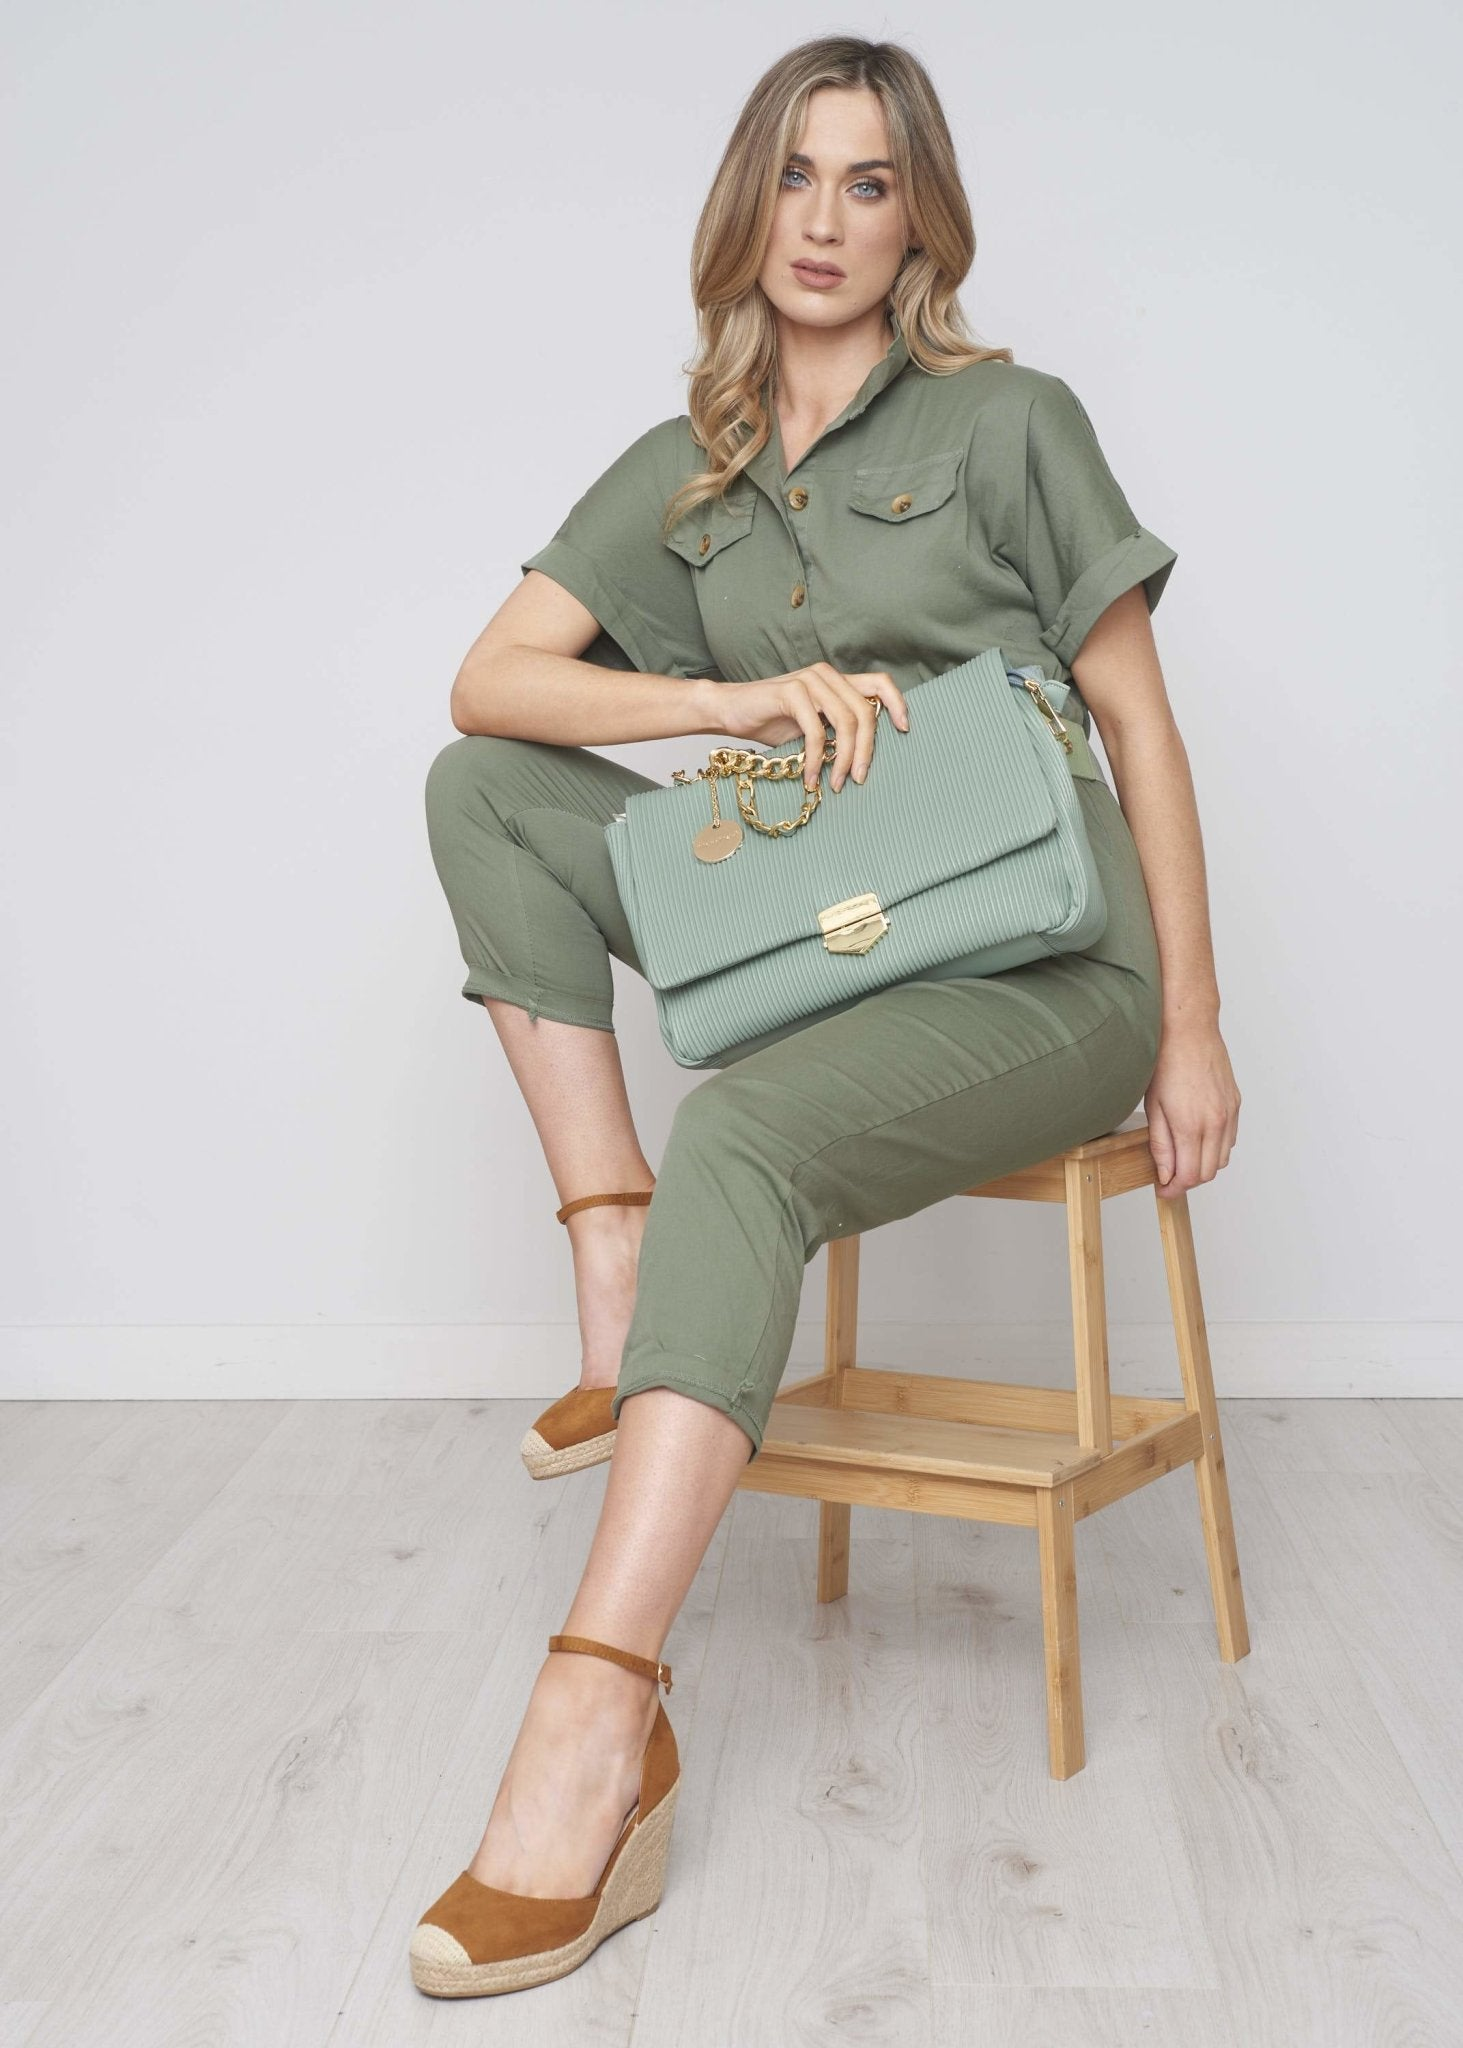 Priya Belted Jumpsuit In Khaki - The Walk in Wardrobe